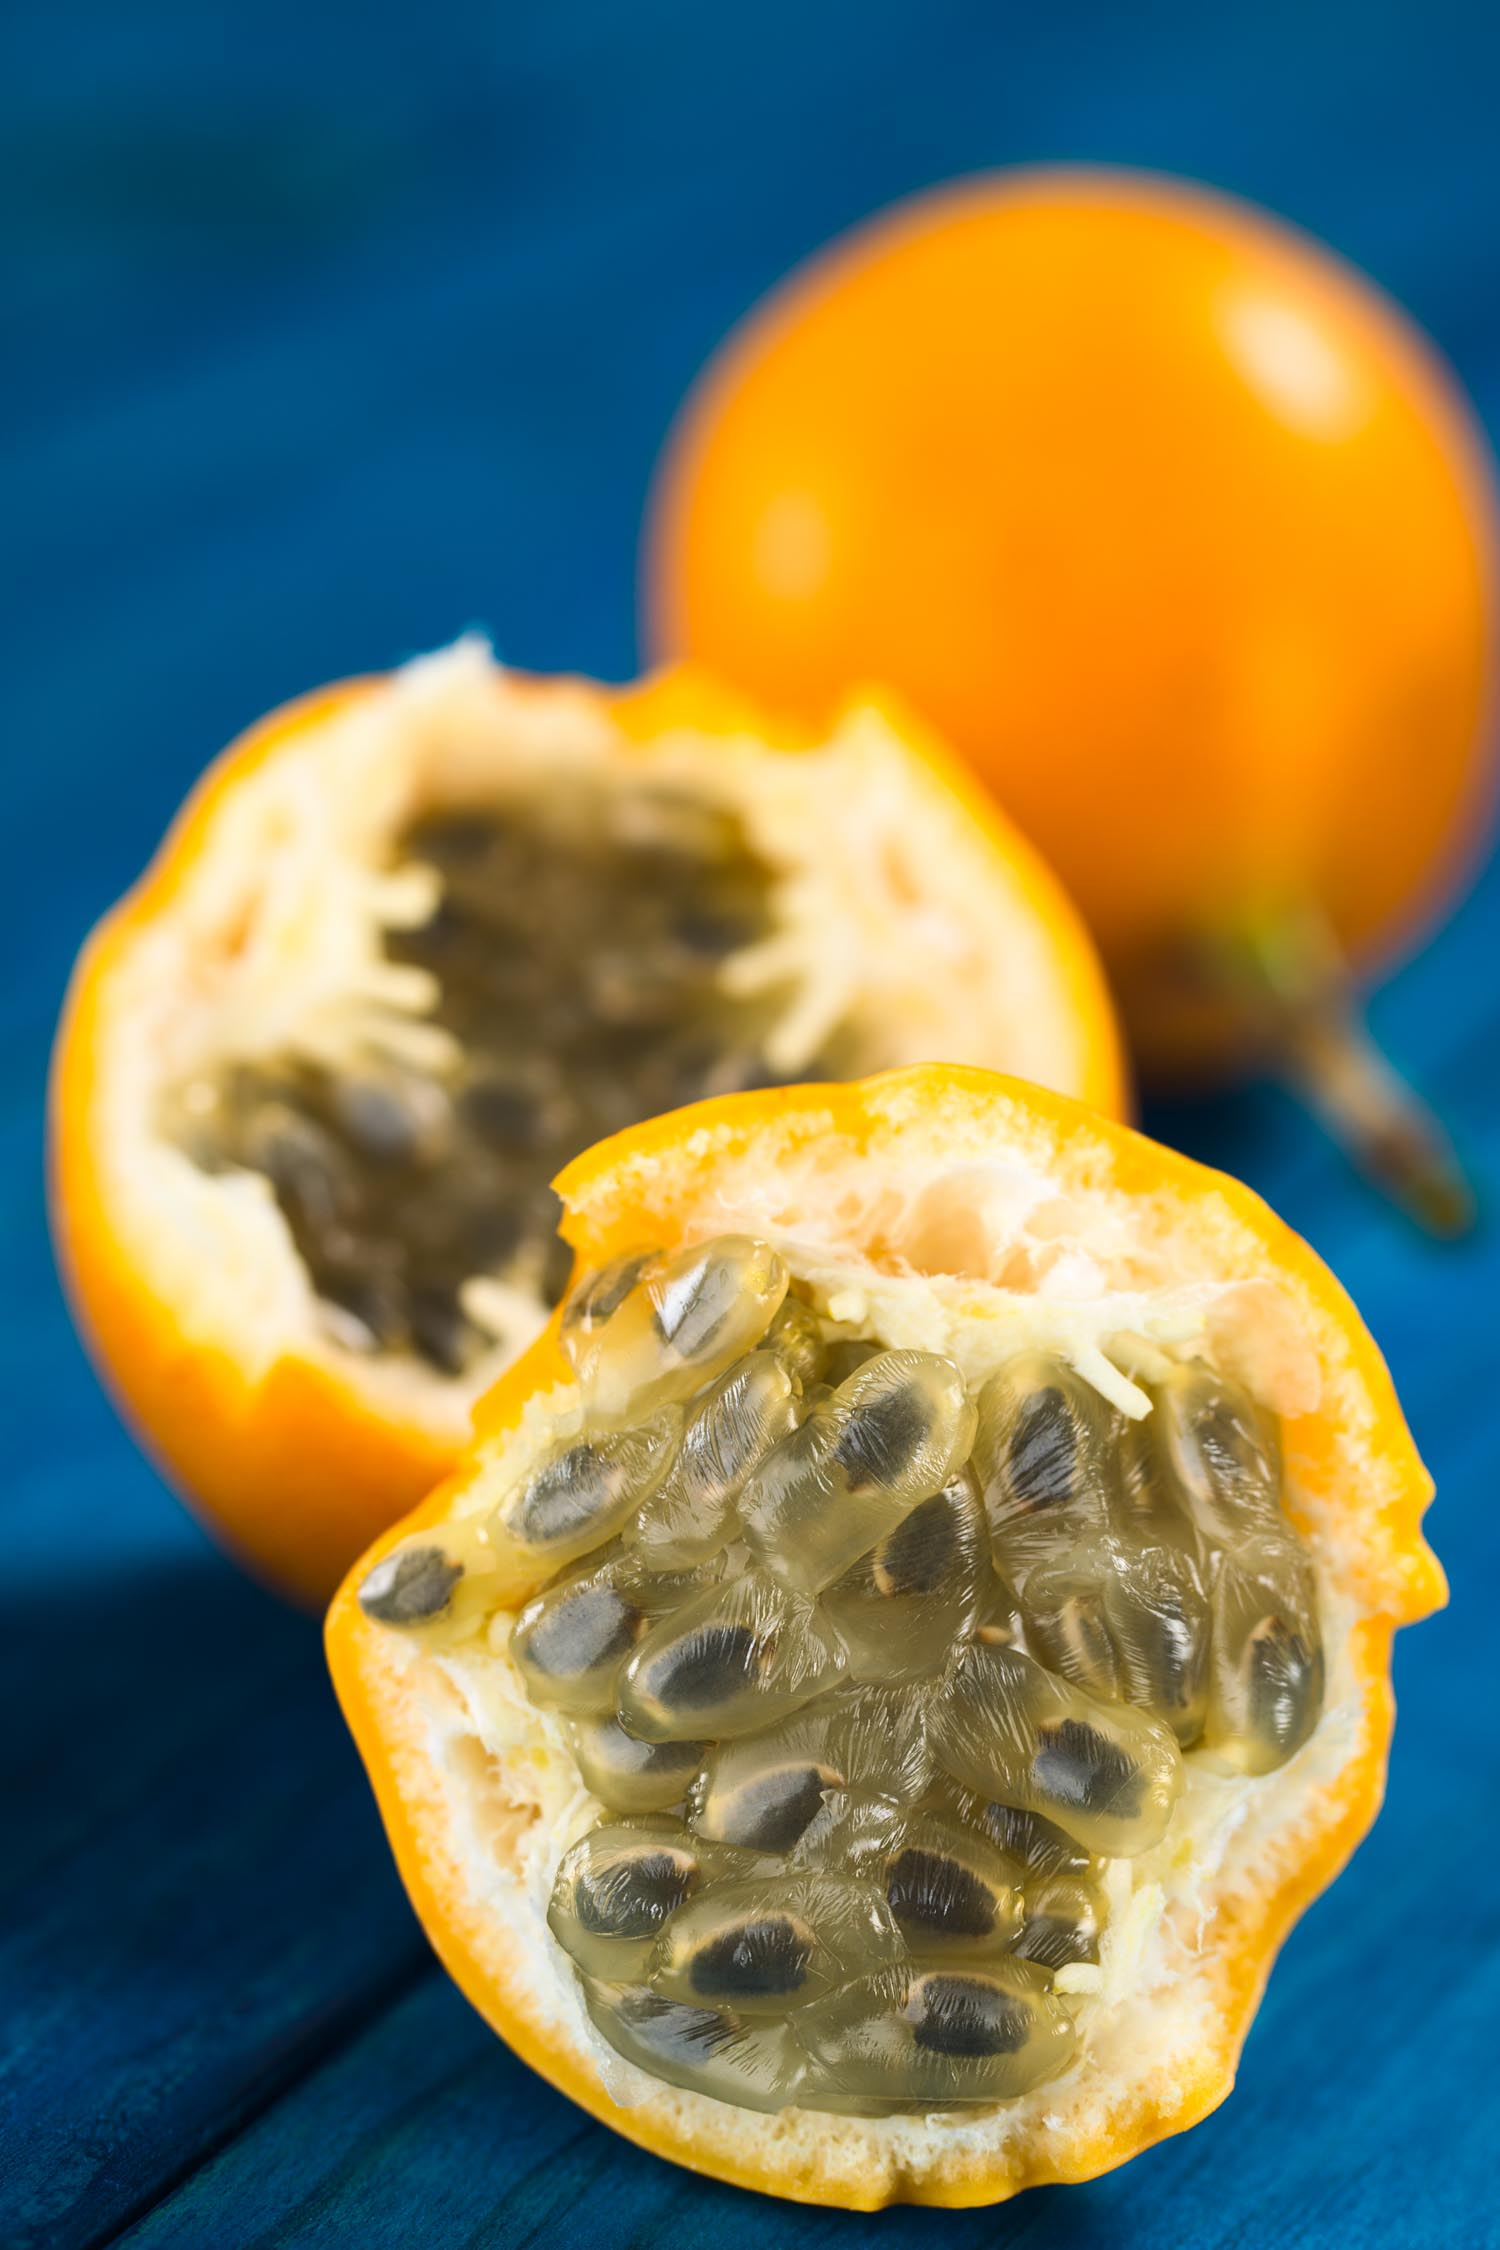 Fruit in Hawaii called lilikoi also known as sweet granadilla or grenadia (lat. Passiflora ligularis) fruit cut in half of which the seeds and the surrounding juicy pulp is eaten or is used to prepare juice